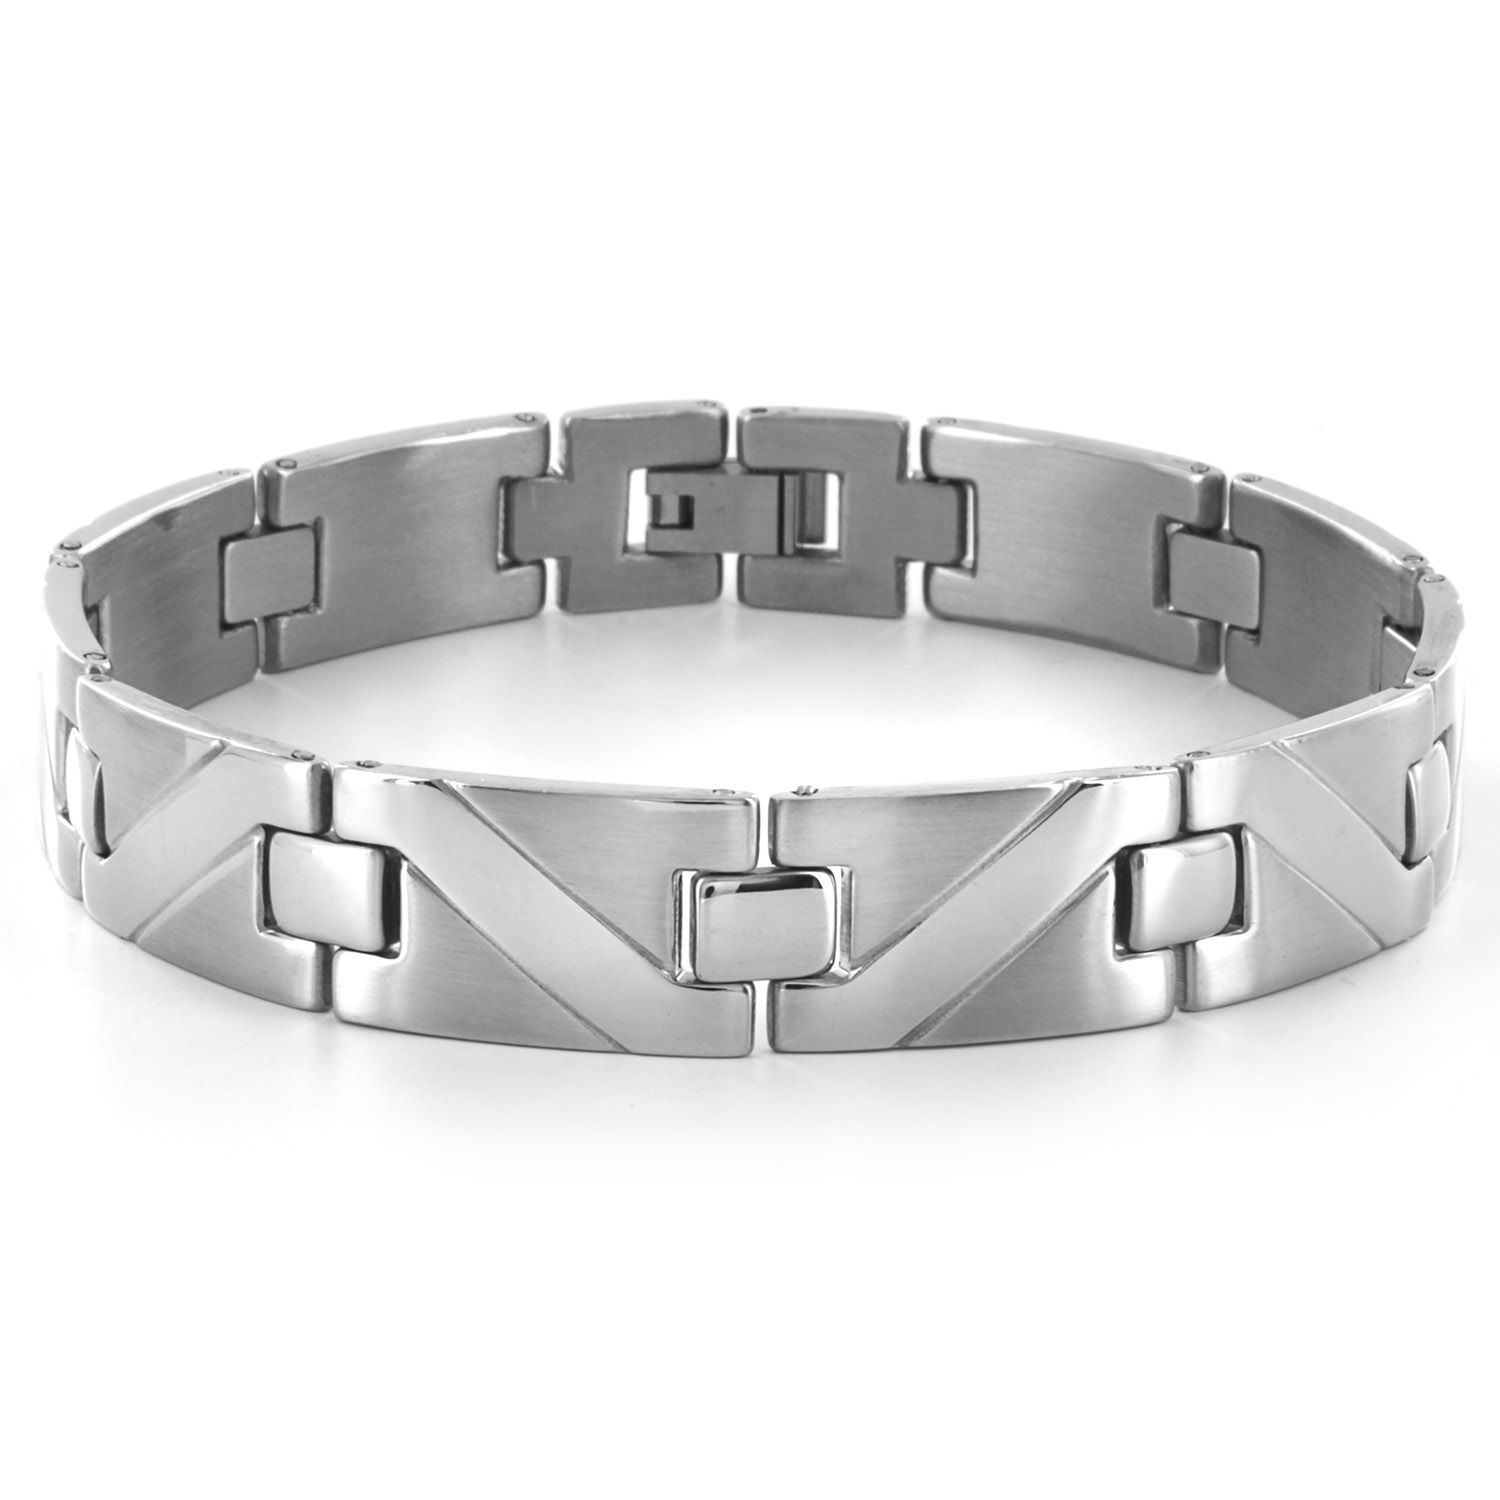 West coast jewelry crucible stainless steel wave pattern design link